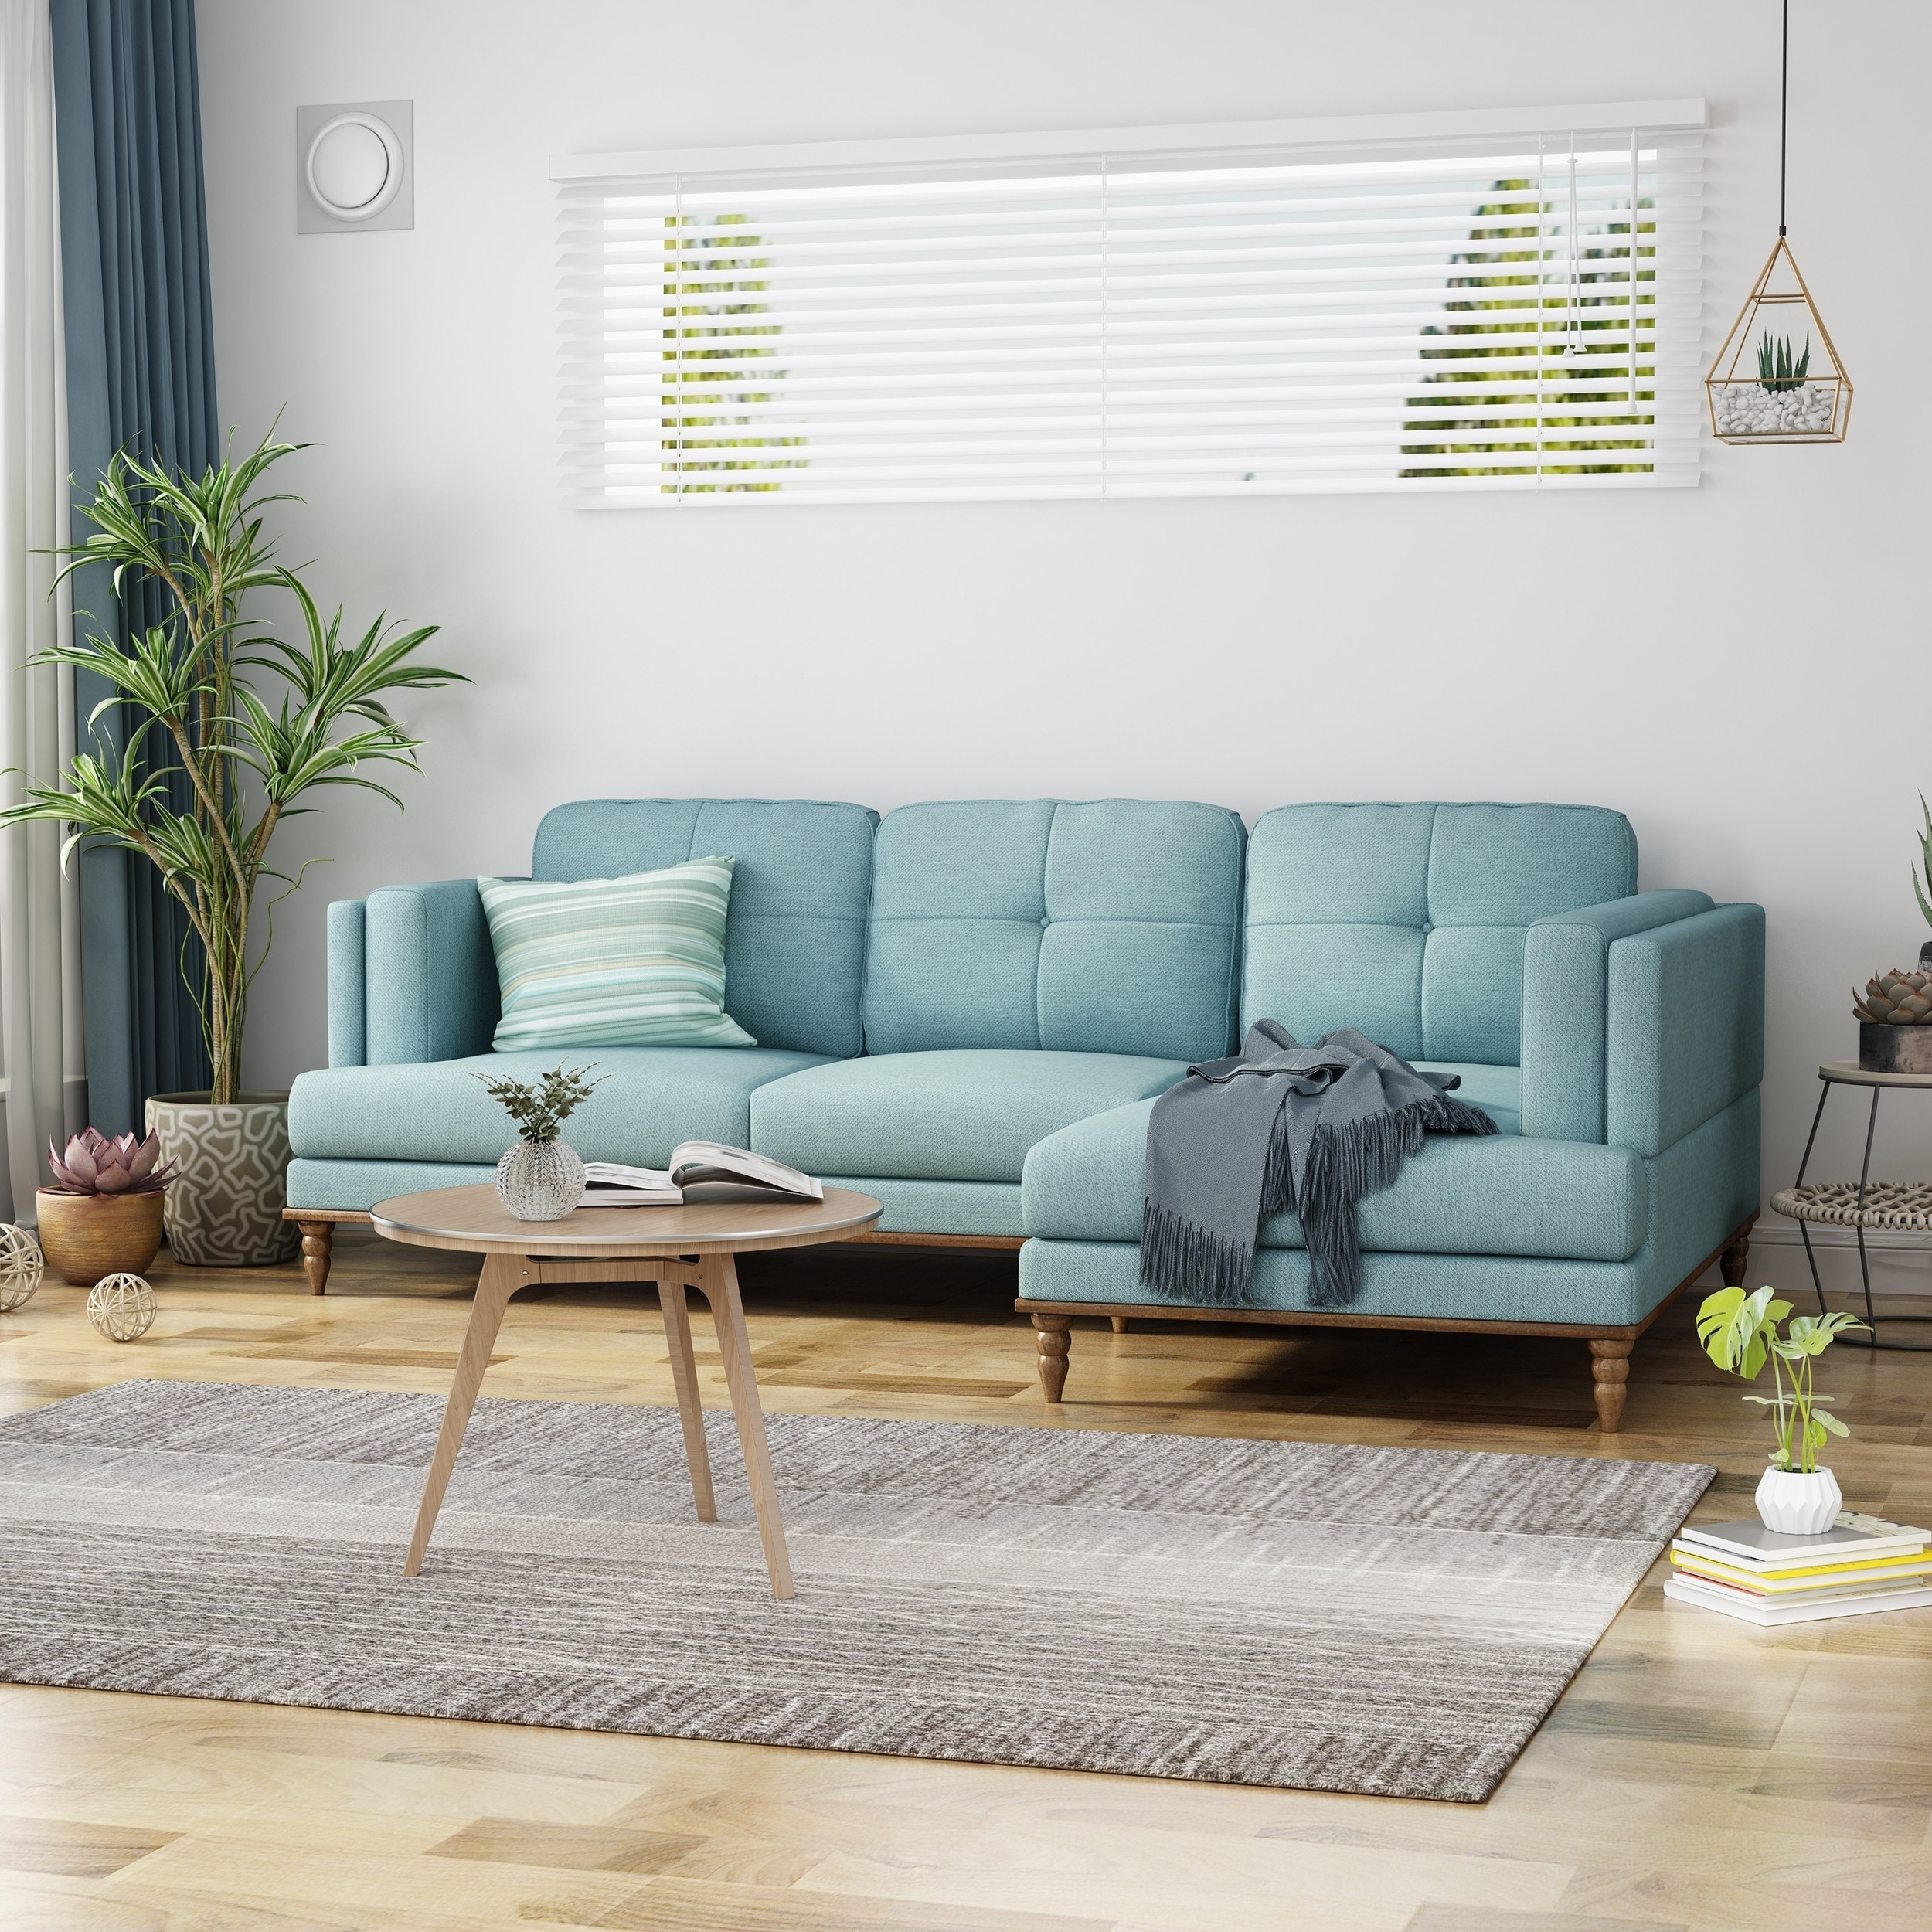 Hollyhock Sectional Couch Set With Chaise Lounge 3 Seater Upholstered Birch Legs By Christopher Knight Home